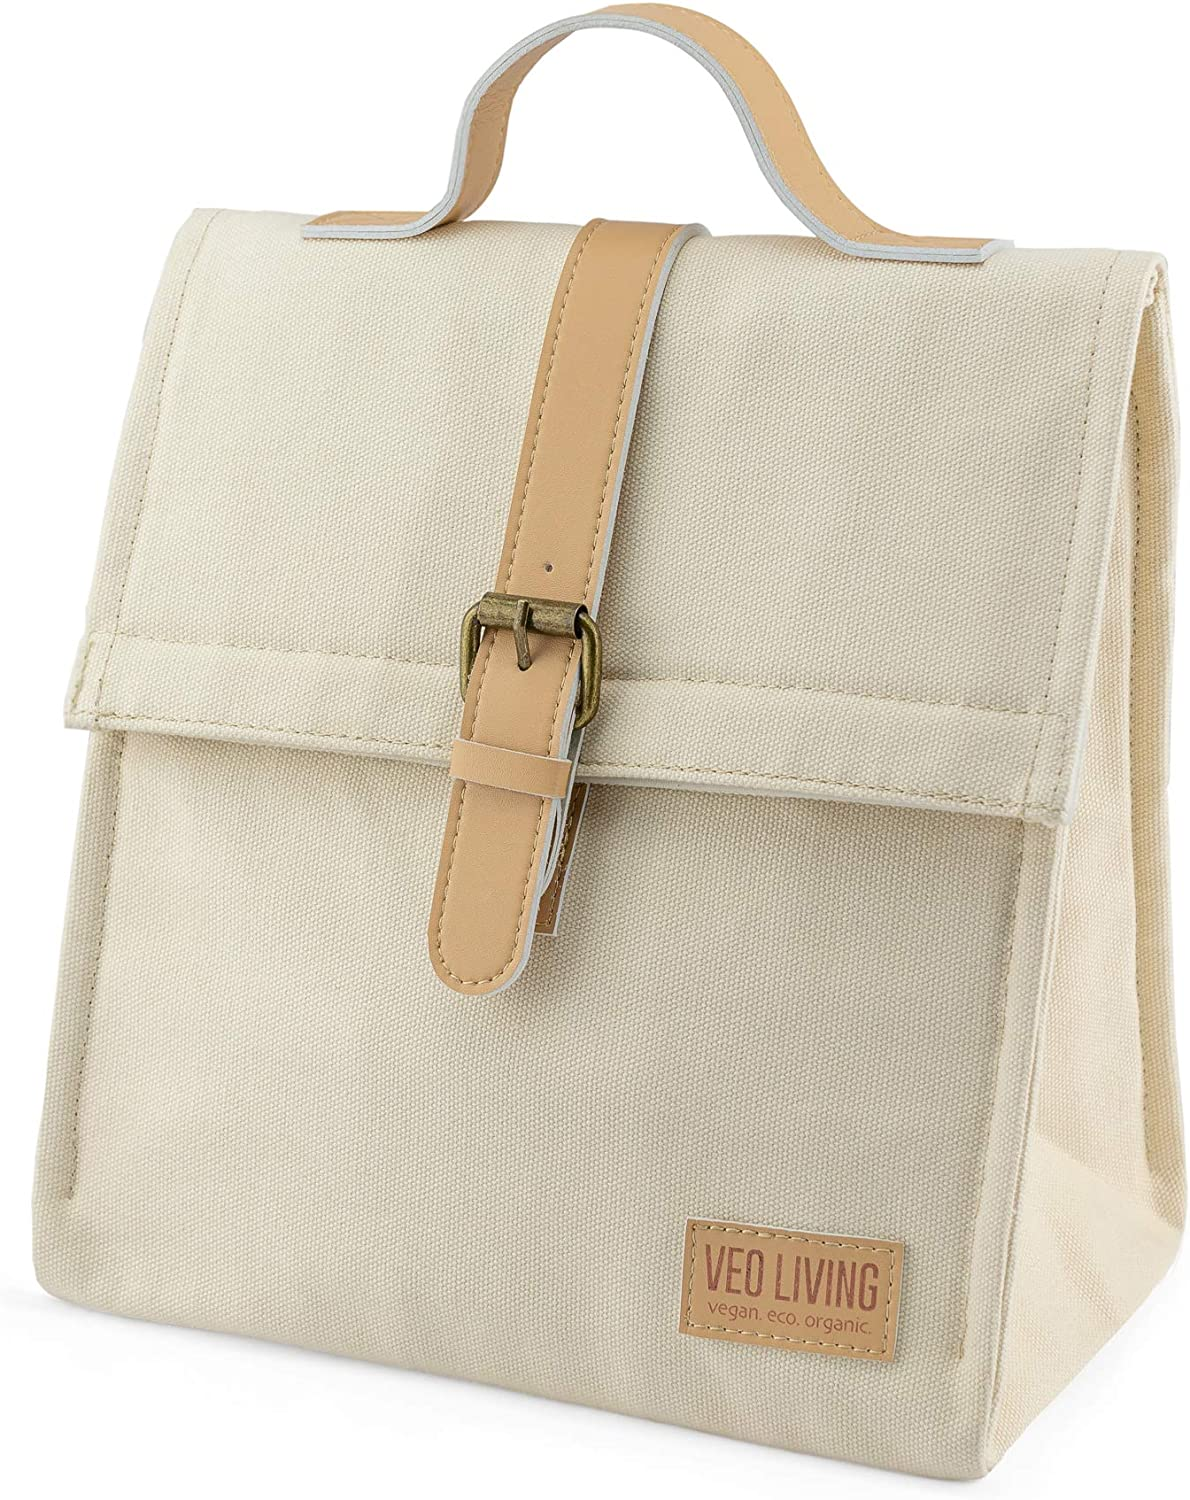 Vegan Insulated Lunch Bag, Beige Canvas, Cruelty Free Product, Reusable, Keeps Food and Drinks Cool, Ethically Made, Eco Friendly, Perfect Tote to take to Work School Day Trips & when Travelling